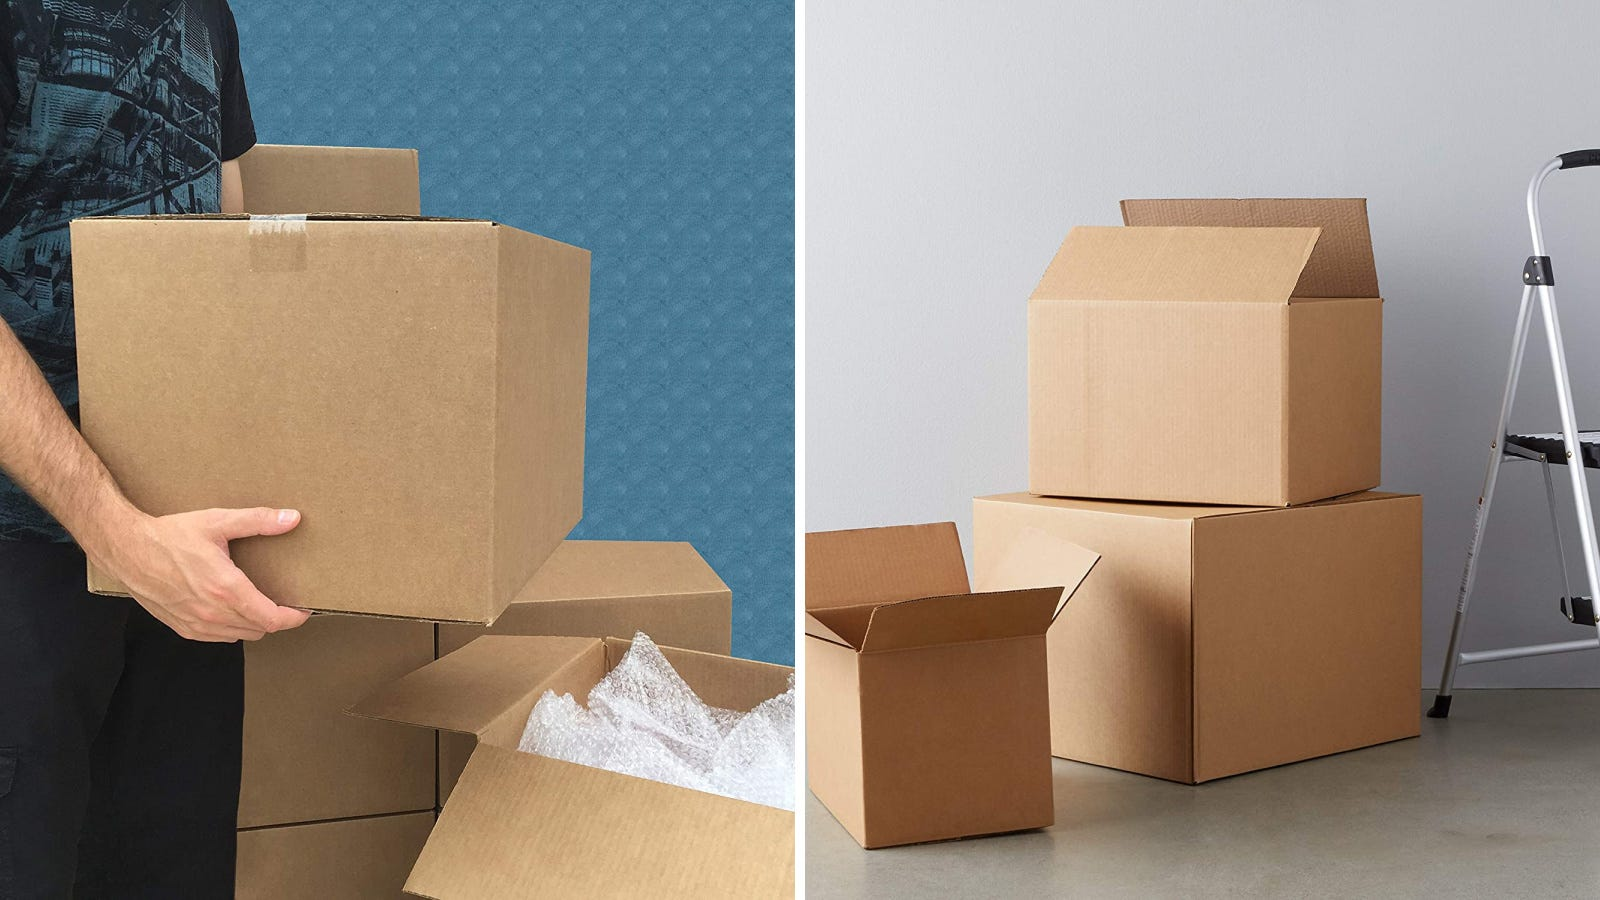 Two images of boxes being carried, packed and stacked before moving day.